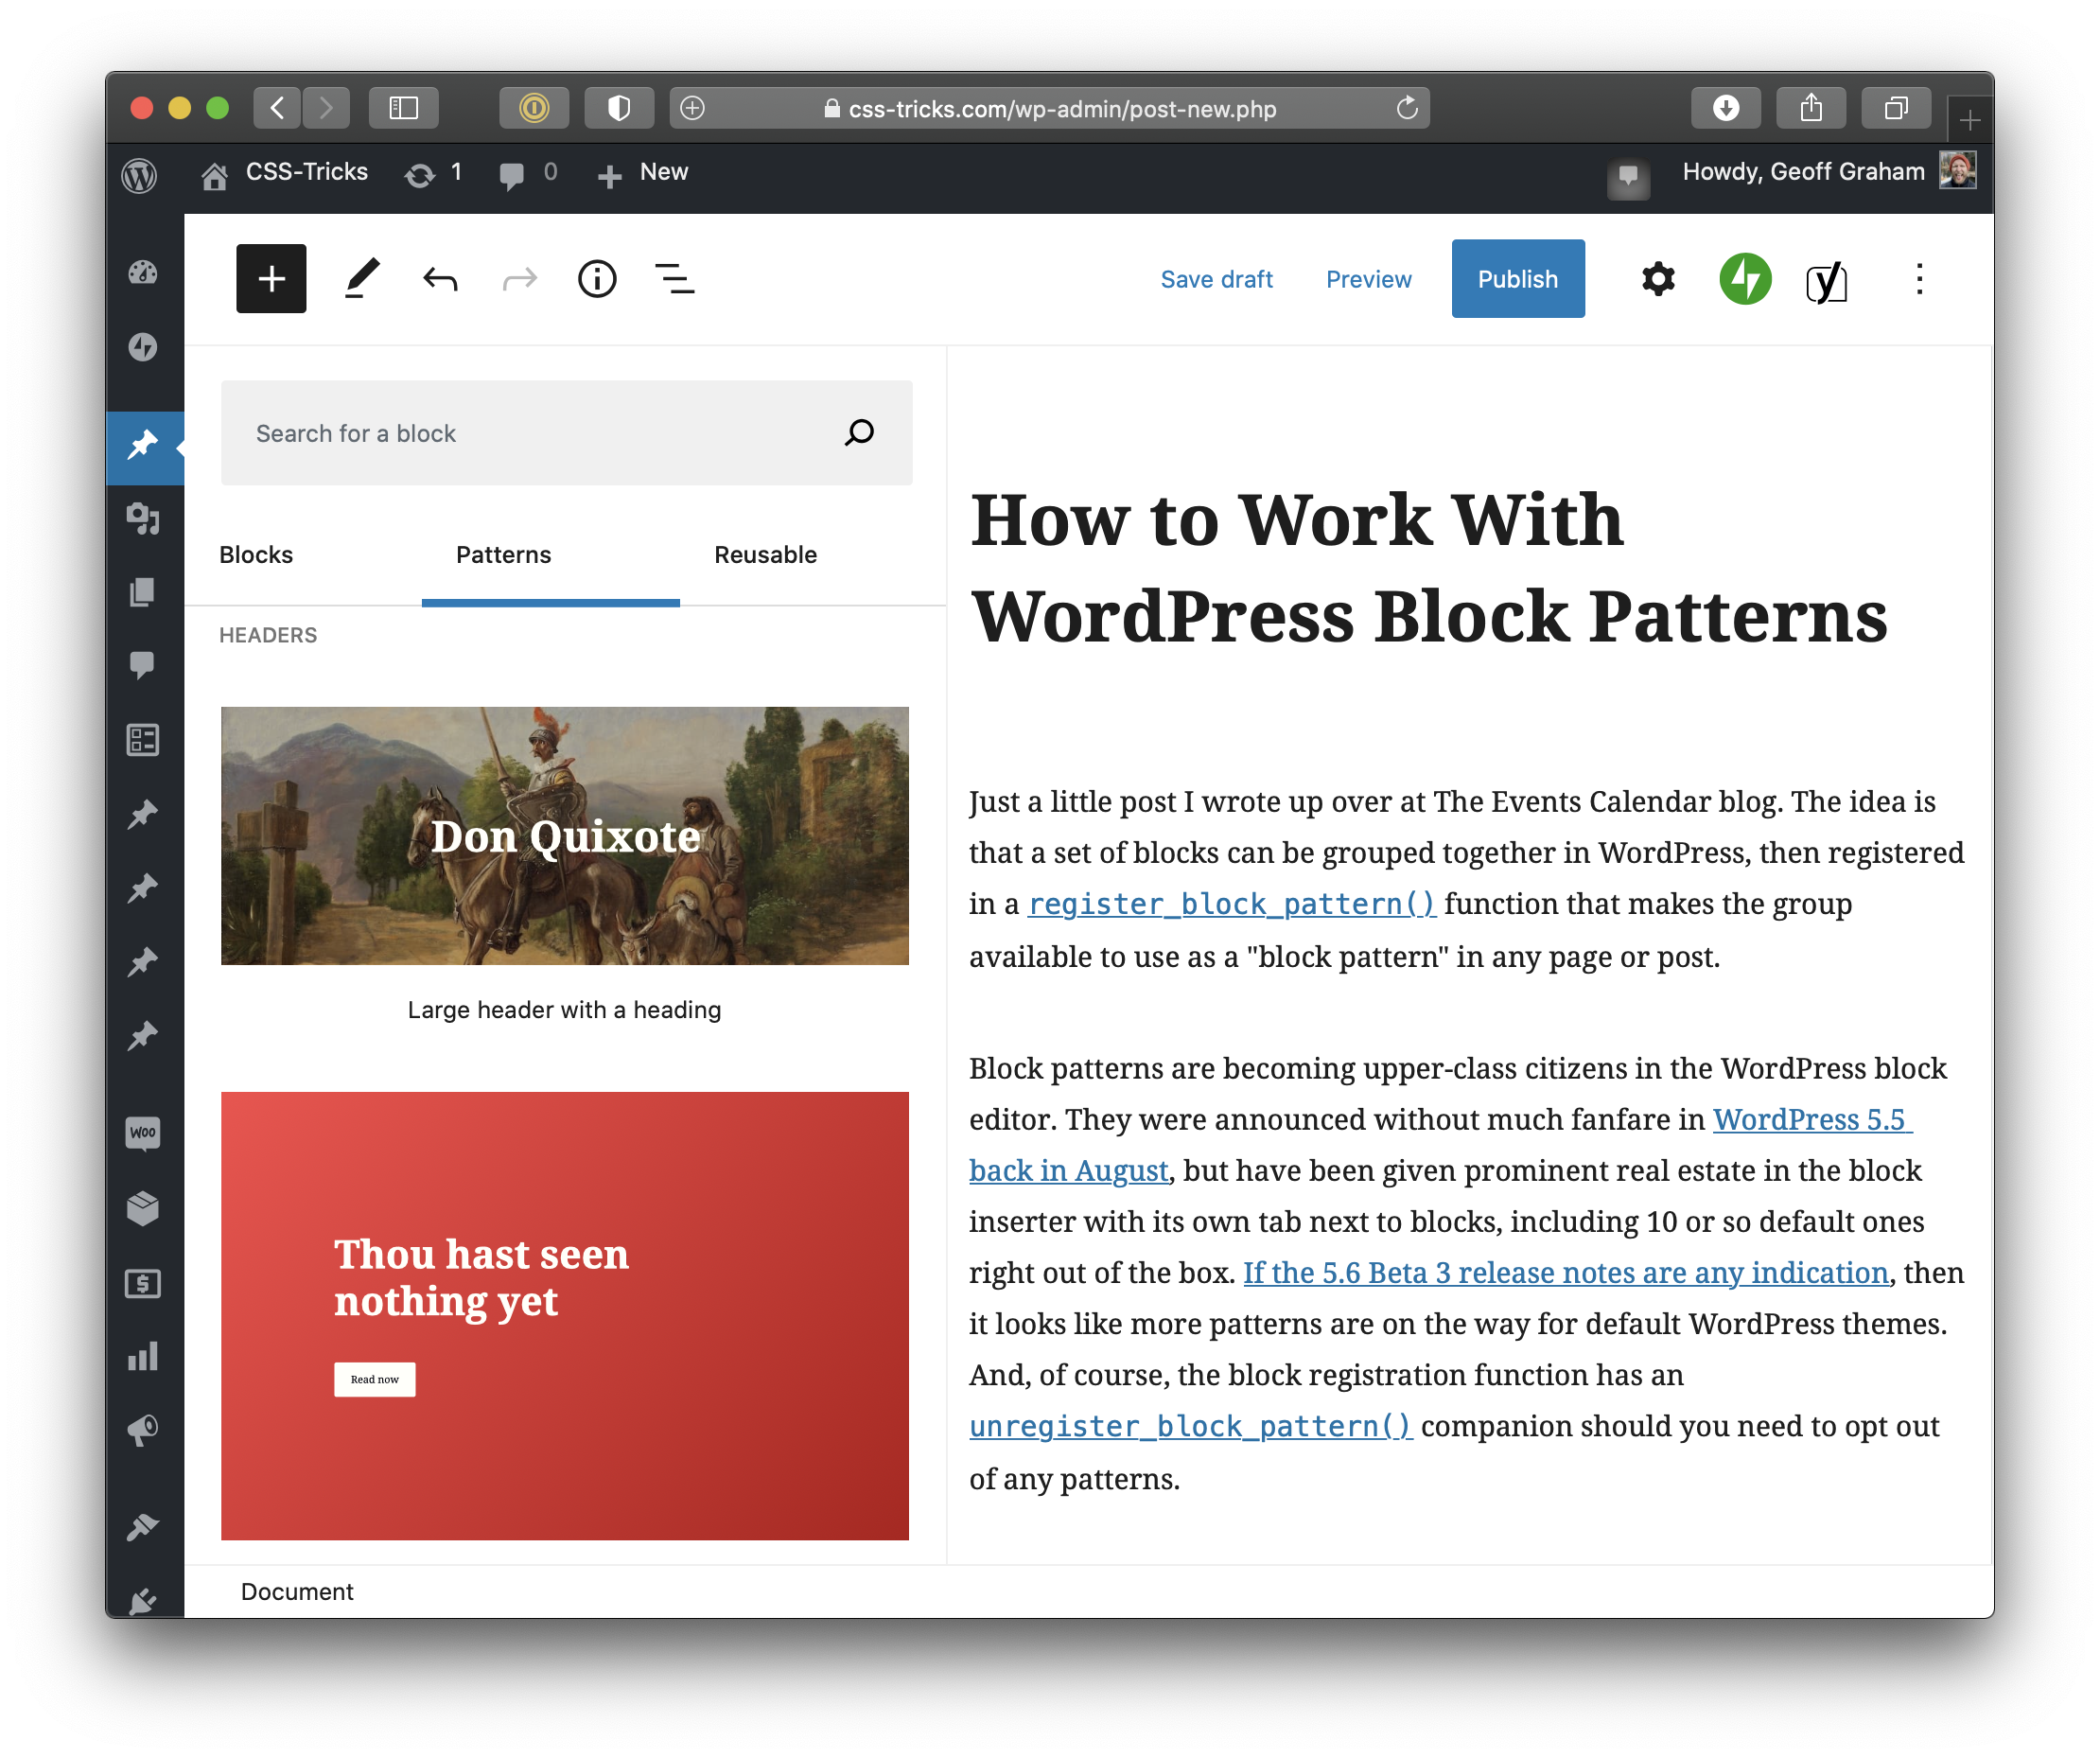 Full page screenshot of the WordPress post editor. On the right is the post content, which includes a large bold title in black above two paragraphs. On the left is the block inserter expanded with the Patterns tab active and displaying two options for header patterns.